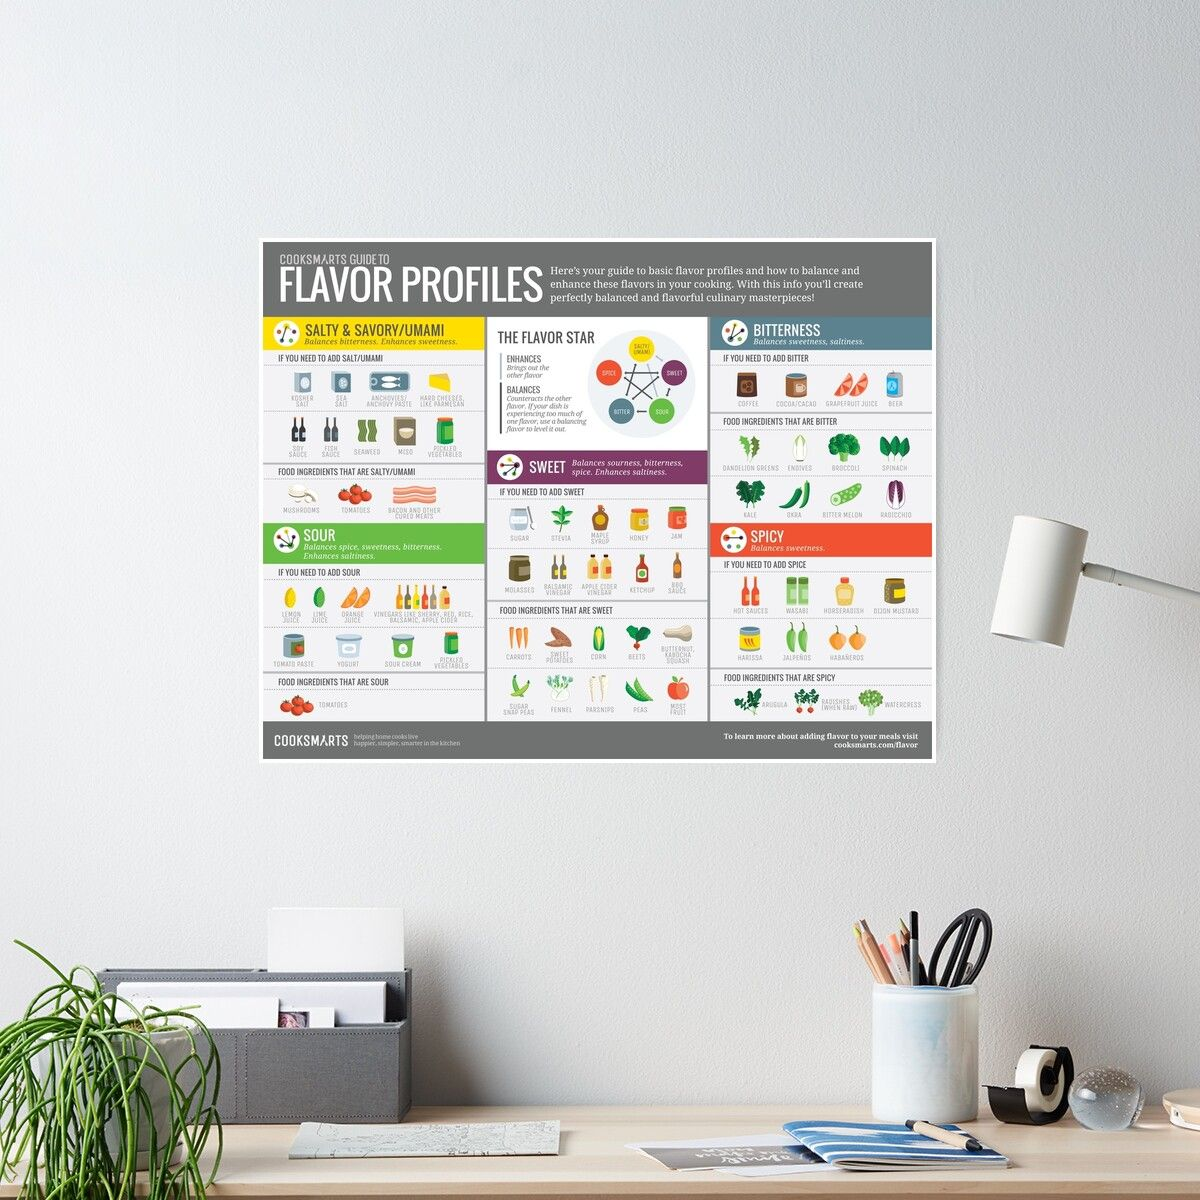 'Cook Smarts Guide to Flavor Profiles' Poster by cooksmarts